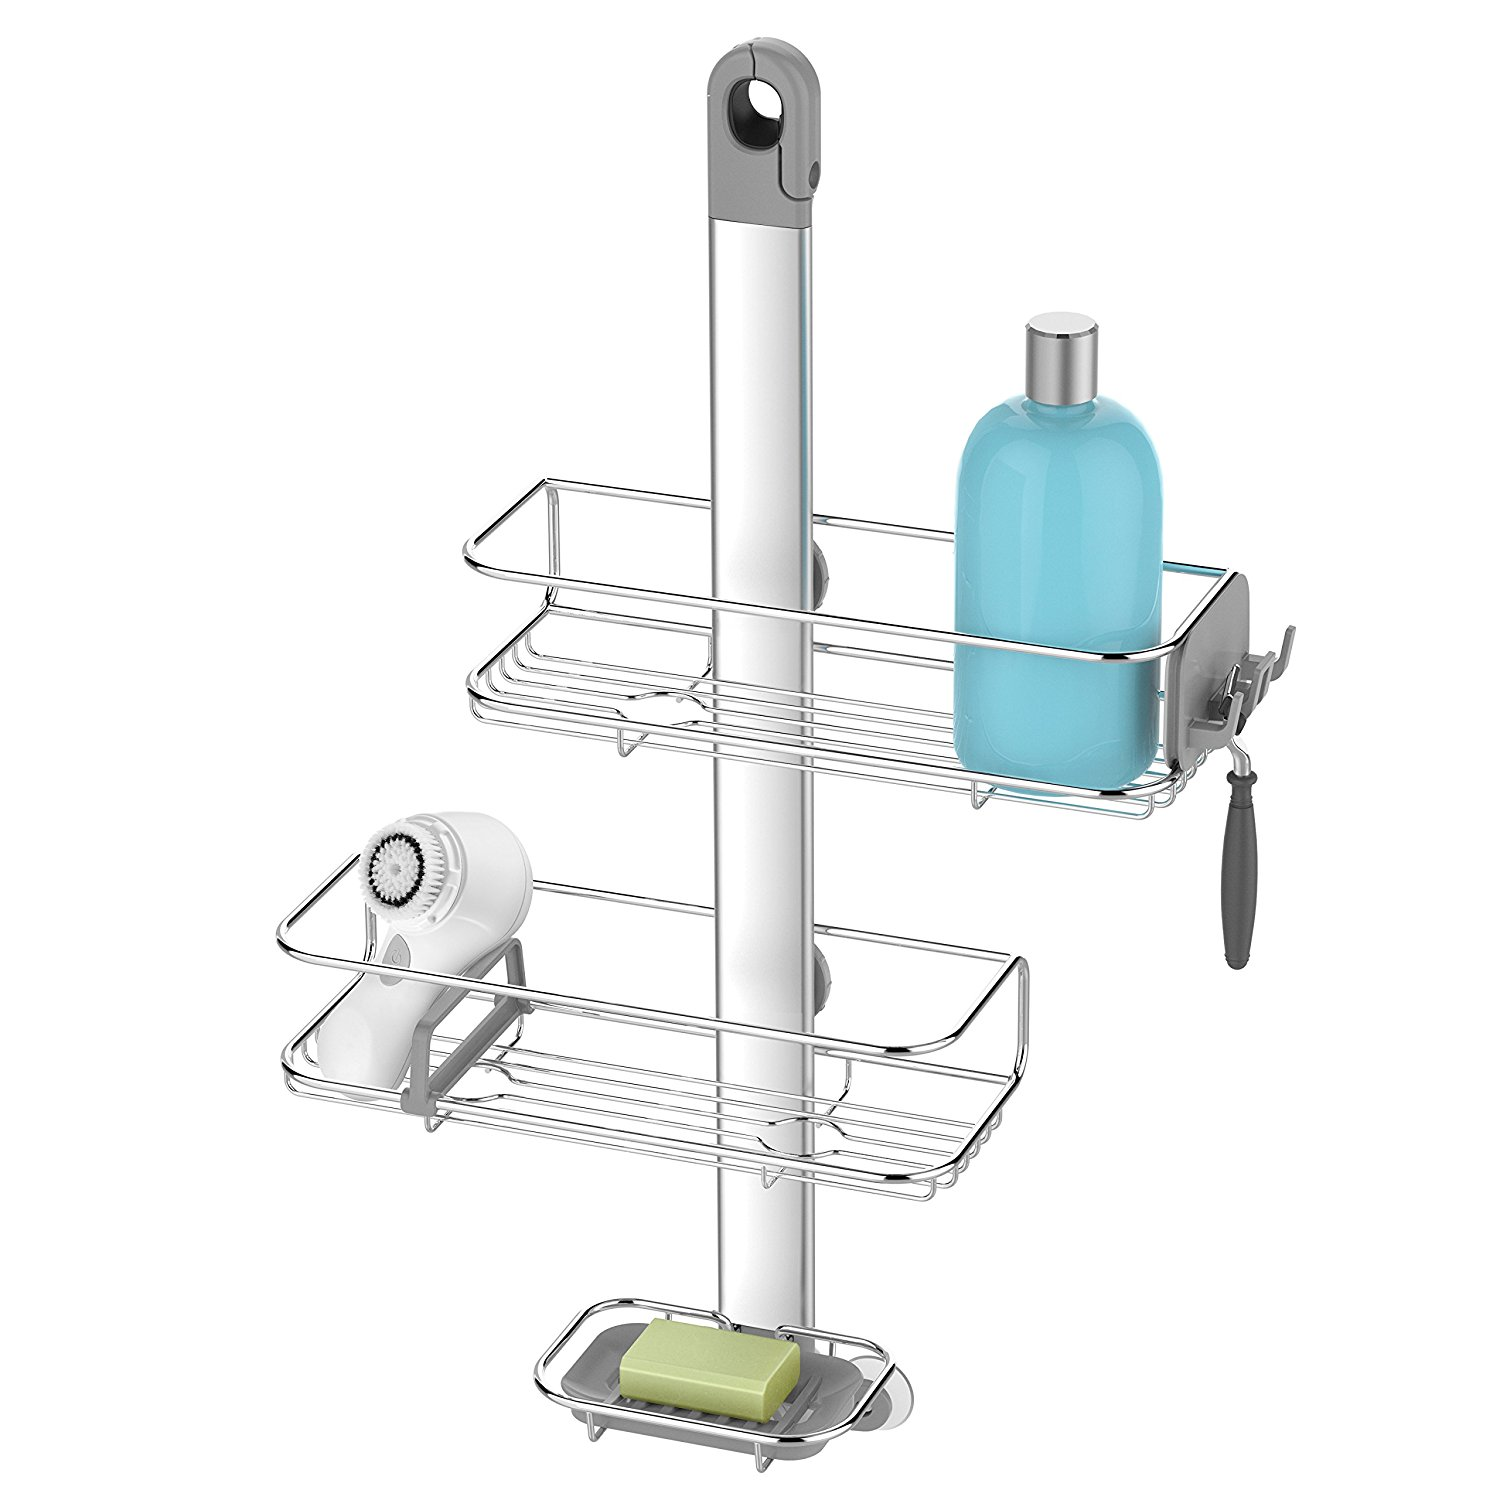 Adjustable Shower Caddy, Stainless Steel and Anodized Alu...